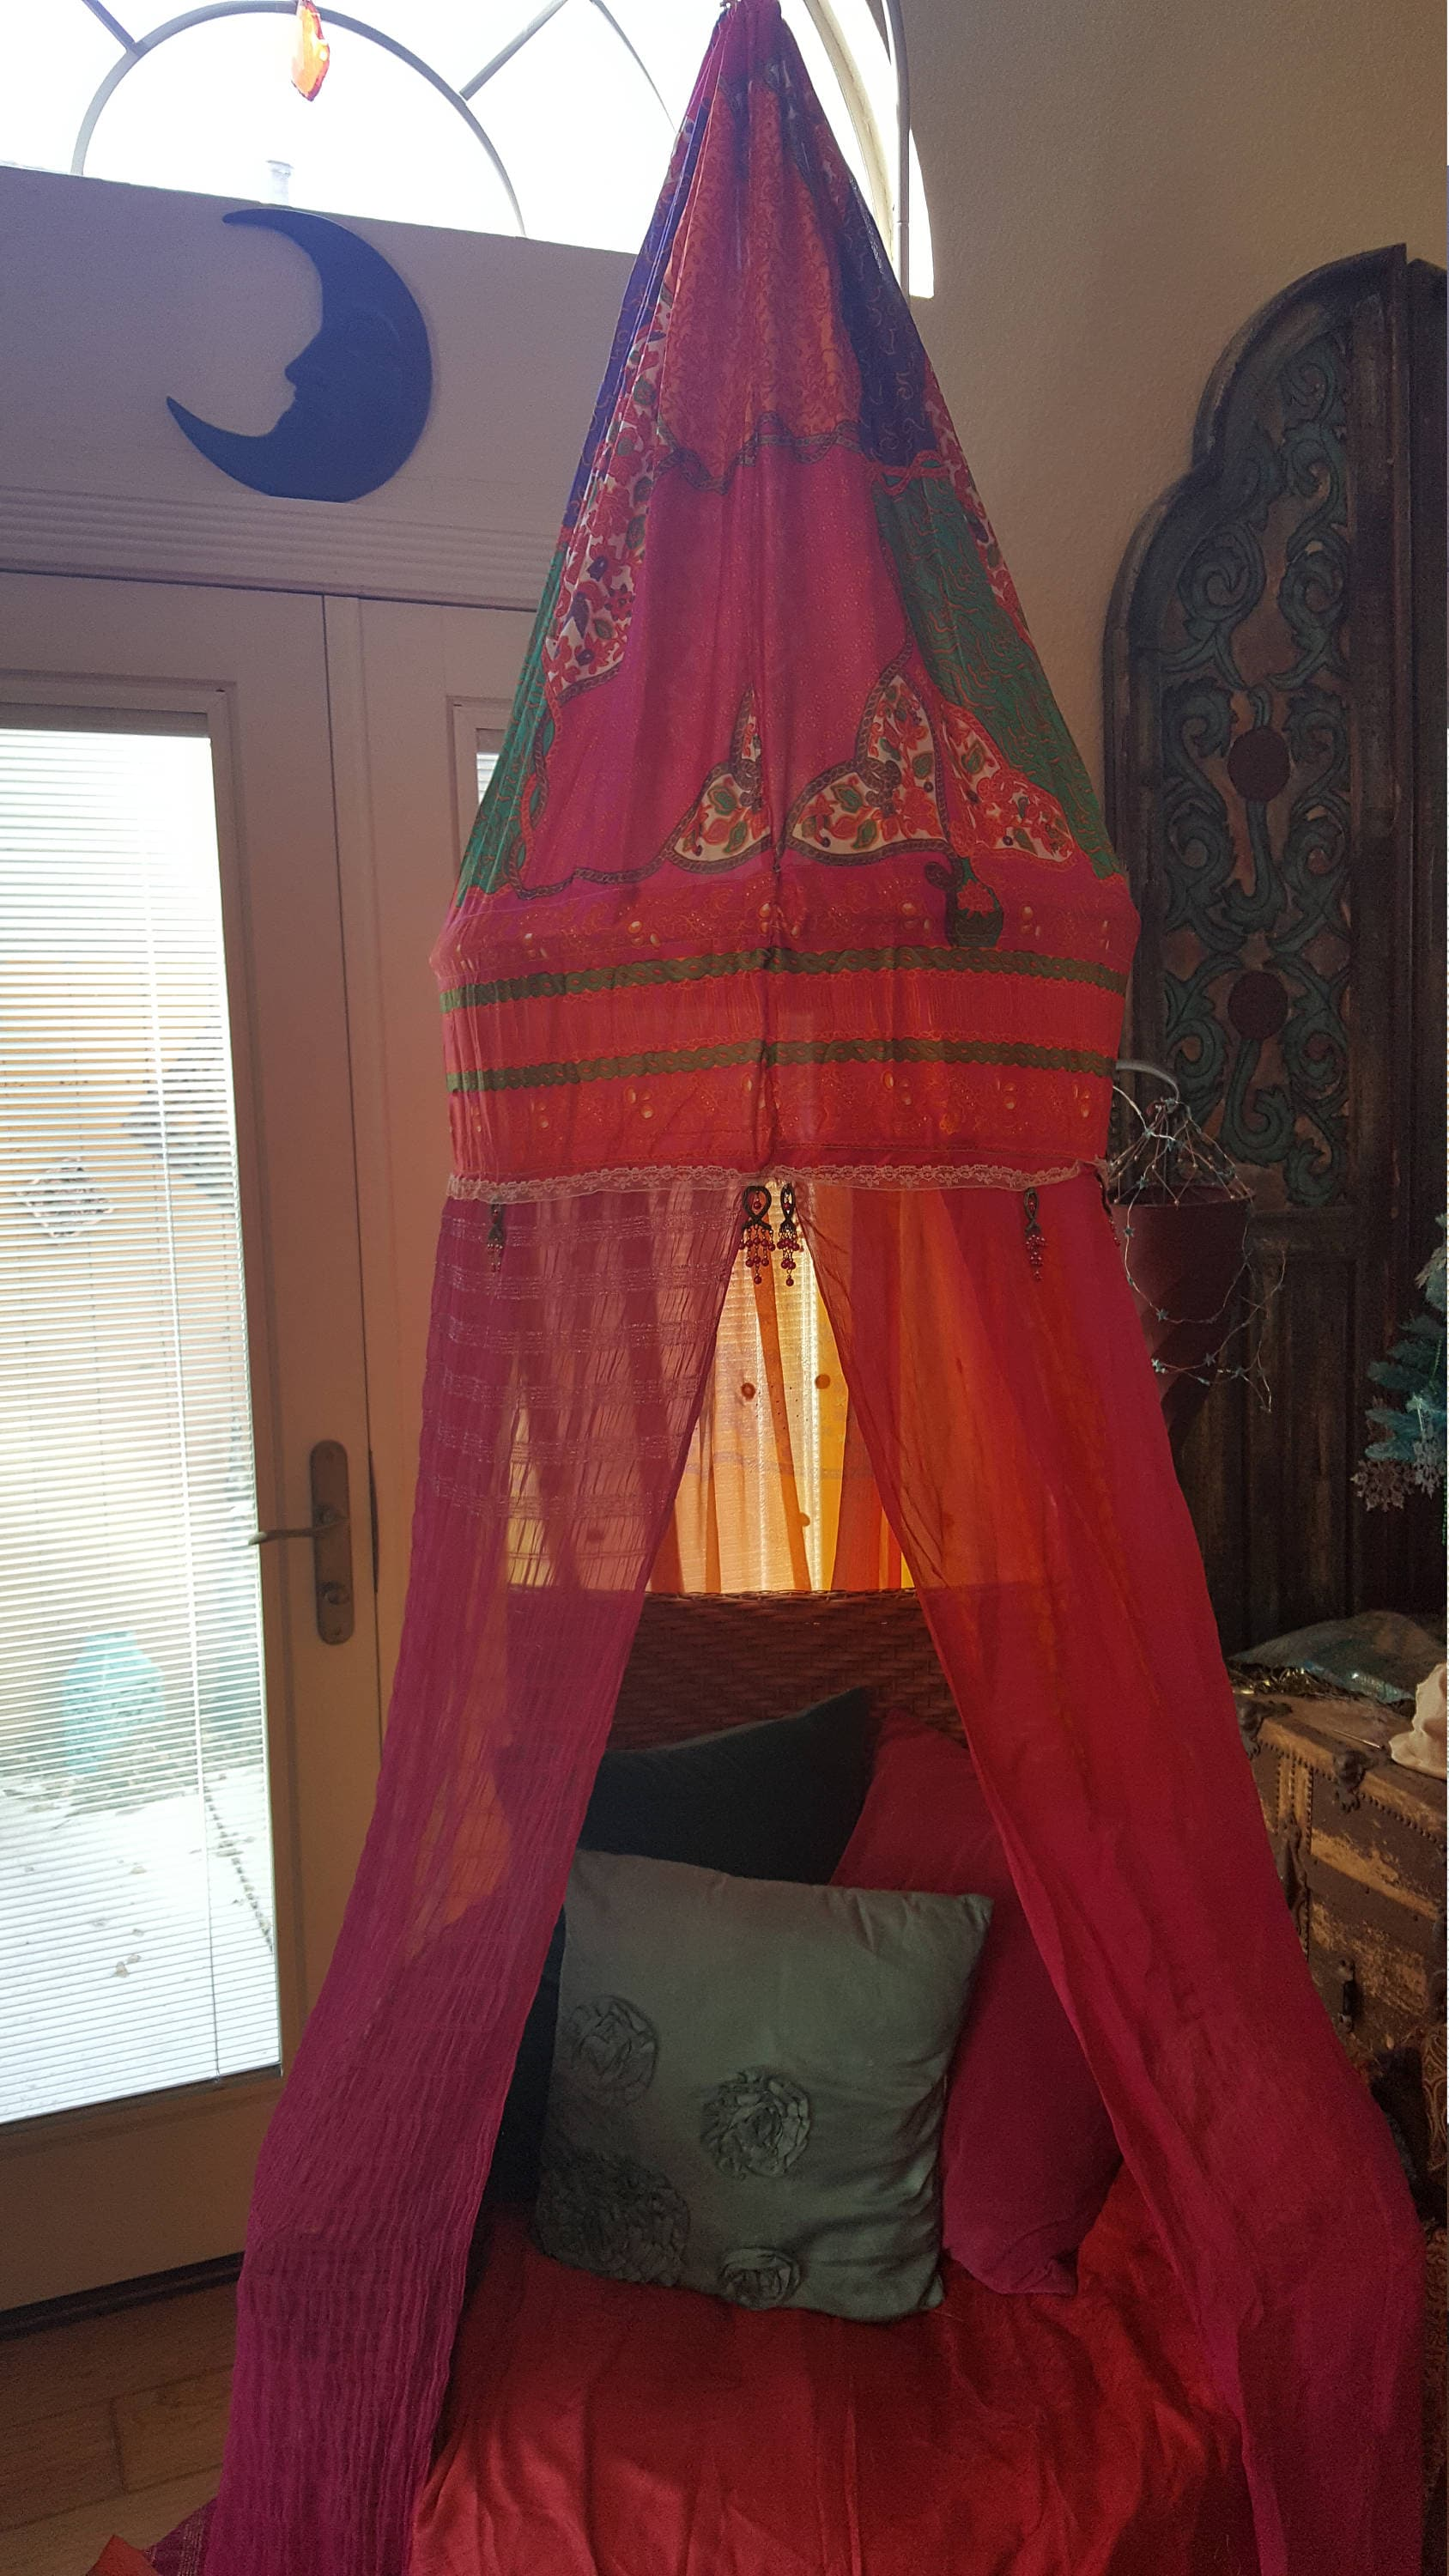 Bohemian Canopy For Bed Or Chair Reading Nook Meditation Tent Glamping Dorm Room Play